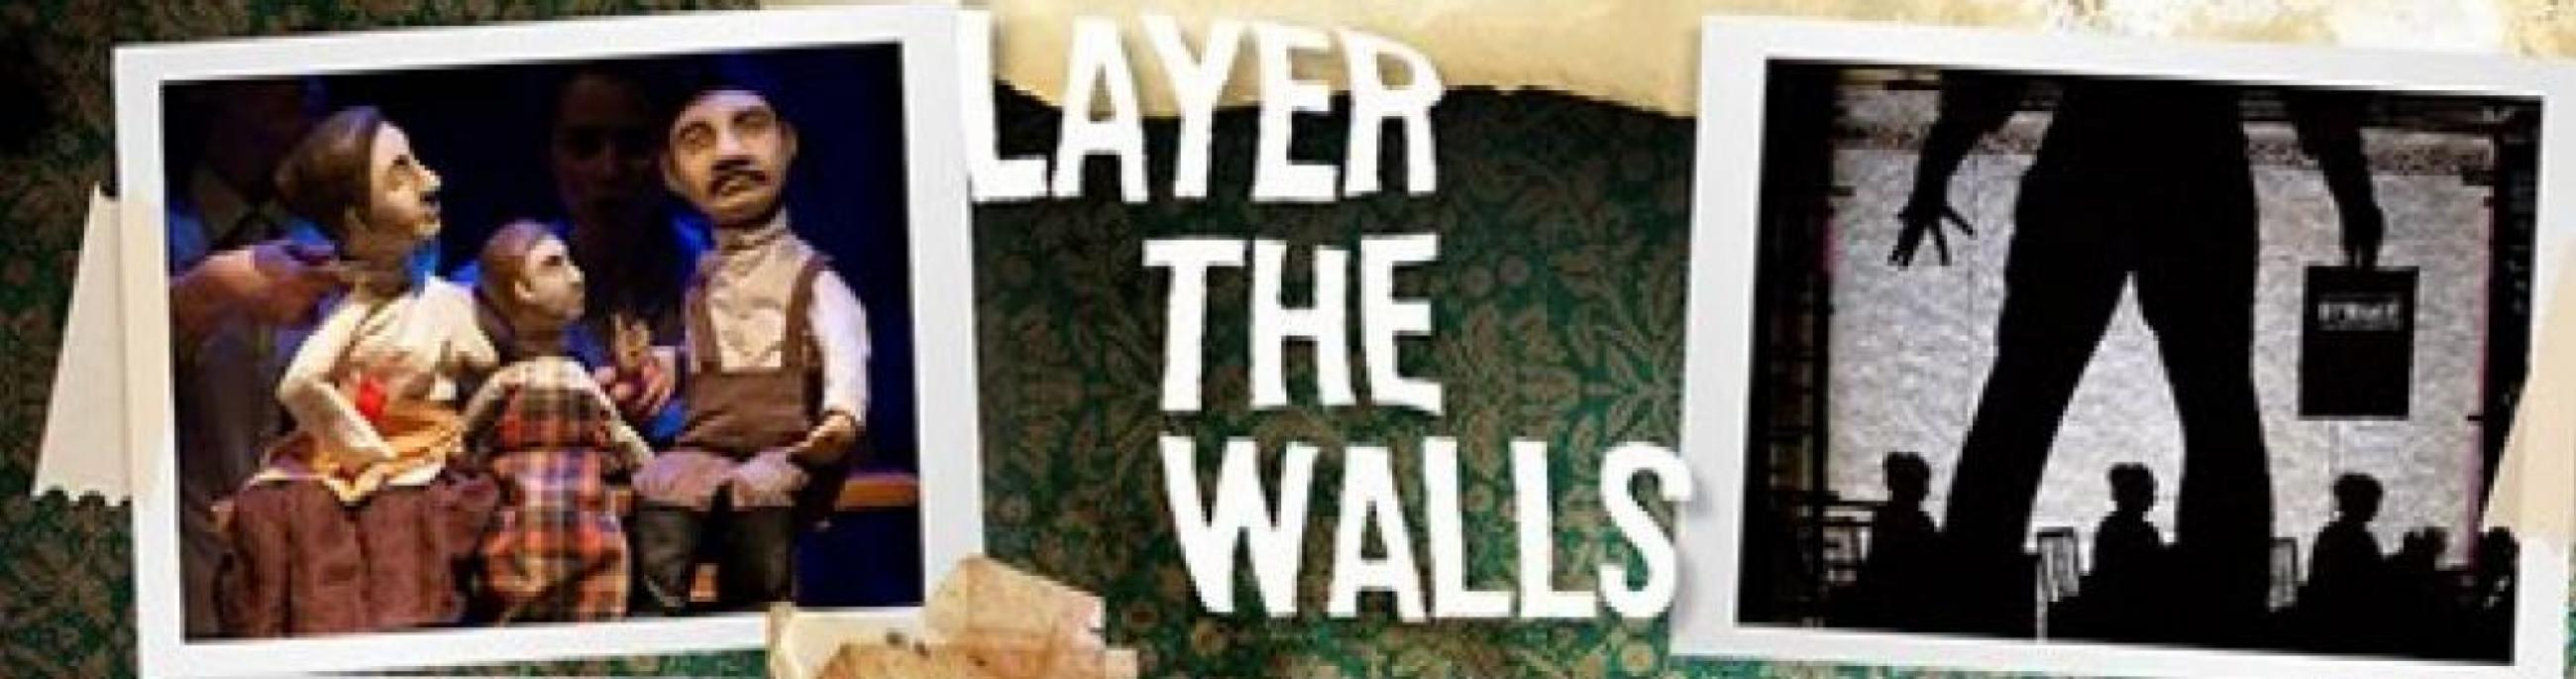 """Snapshots from a stage performance of """"Layer the Walls,"""" featuring puppets and shadows."""